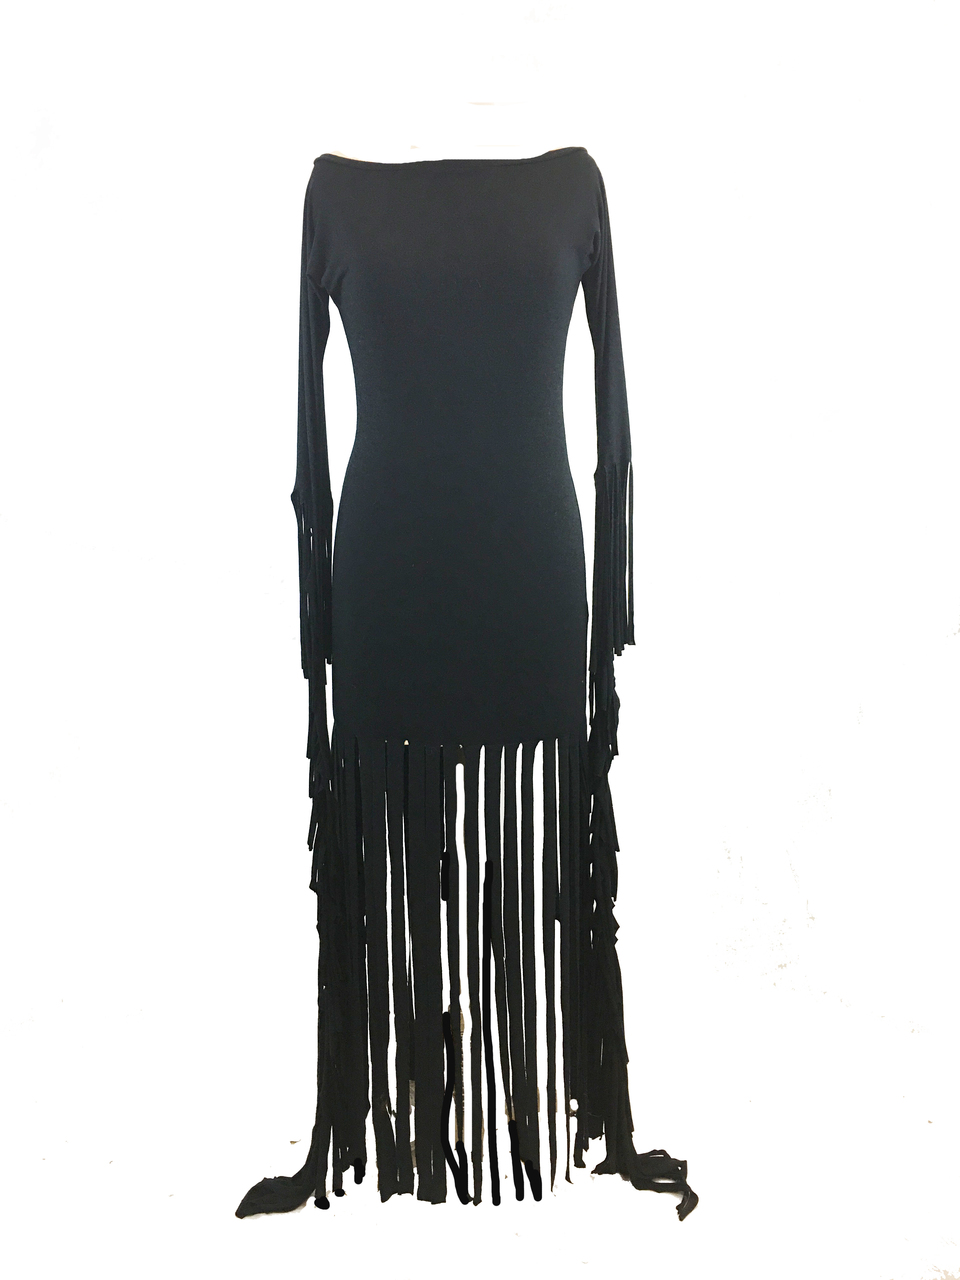 4bfb76122205b FRINGE DRESS - bellaBALAS